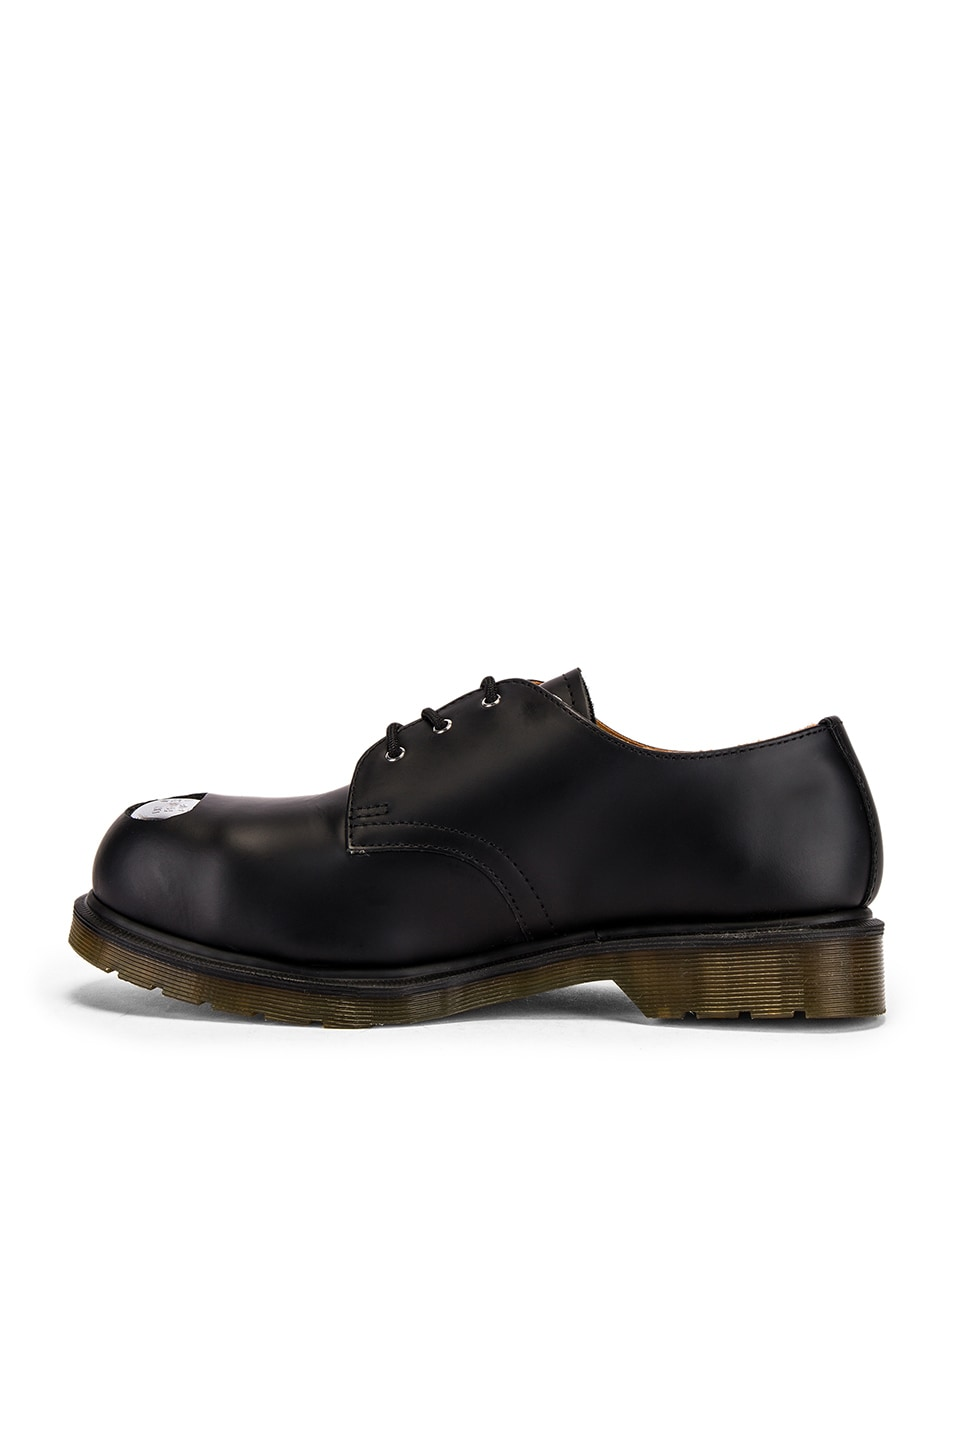 Image 5 of Raf Simons x Dr. Martens Asymmetric Cut Out Steel Shoe in Black